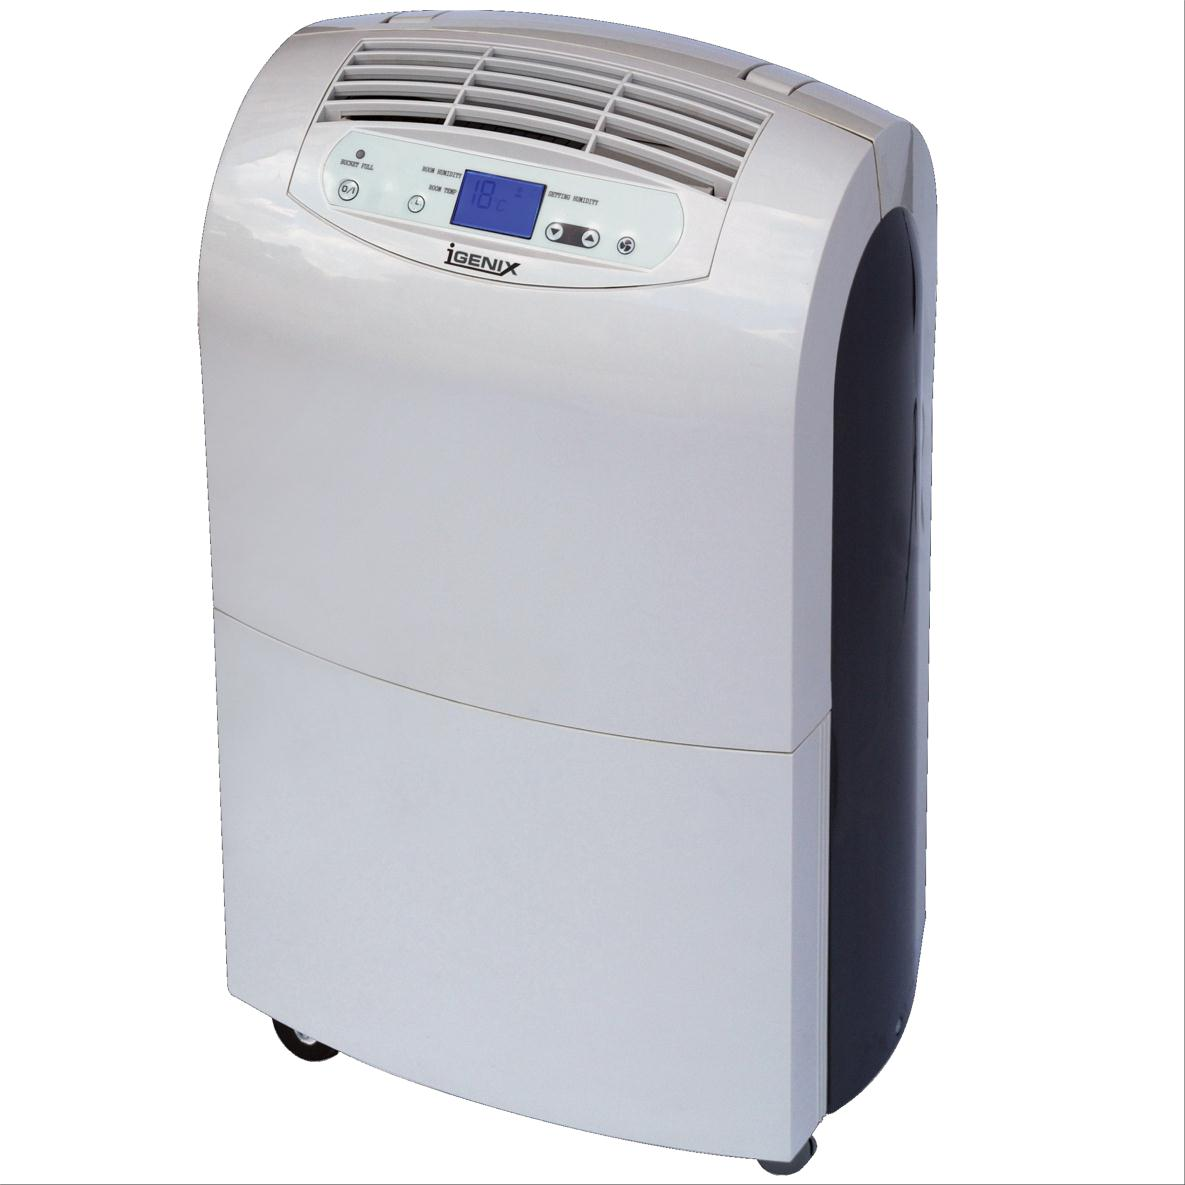 Image for Igenix De-Humidifier LCD Display Rotary Compressor Extracts 20L/24h 340W Tank 6.5 Litre Ref IG9800